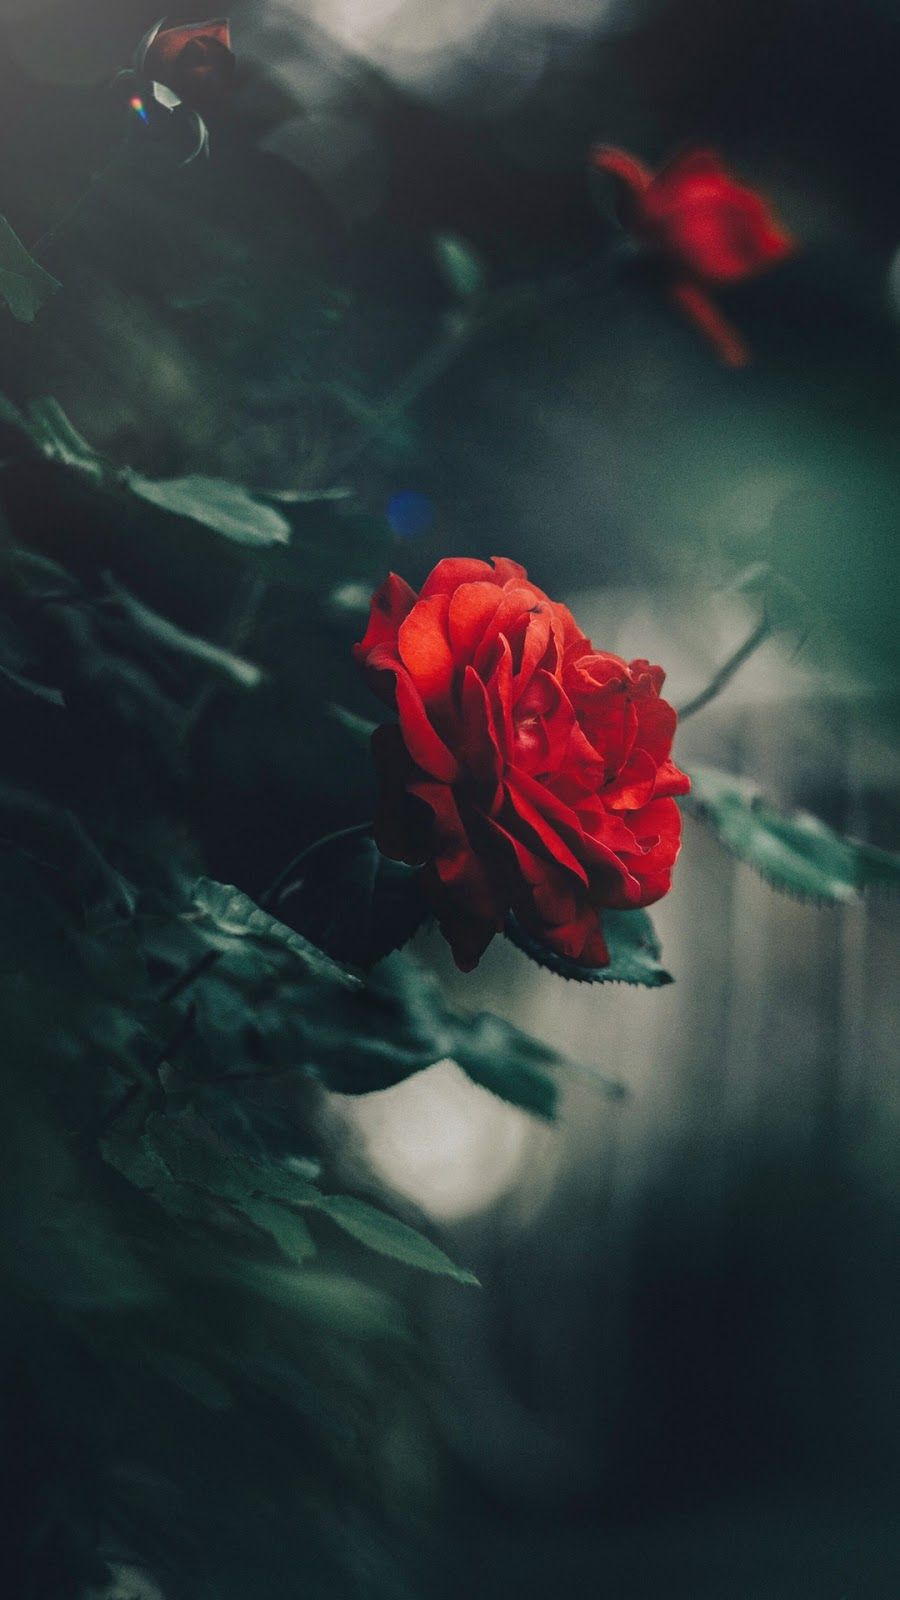 Red rose beautiful wallpaper flowers rose flower - Rose flowers wallpaper for mobile ...